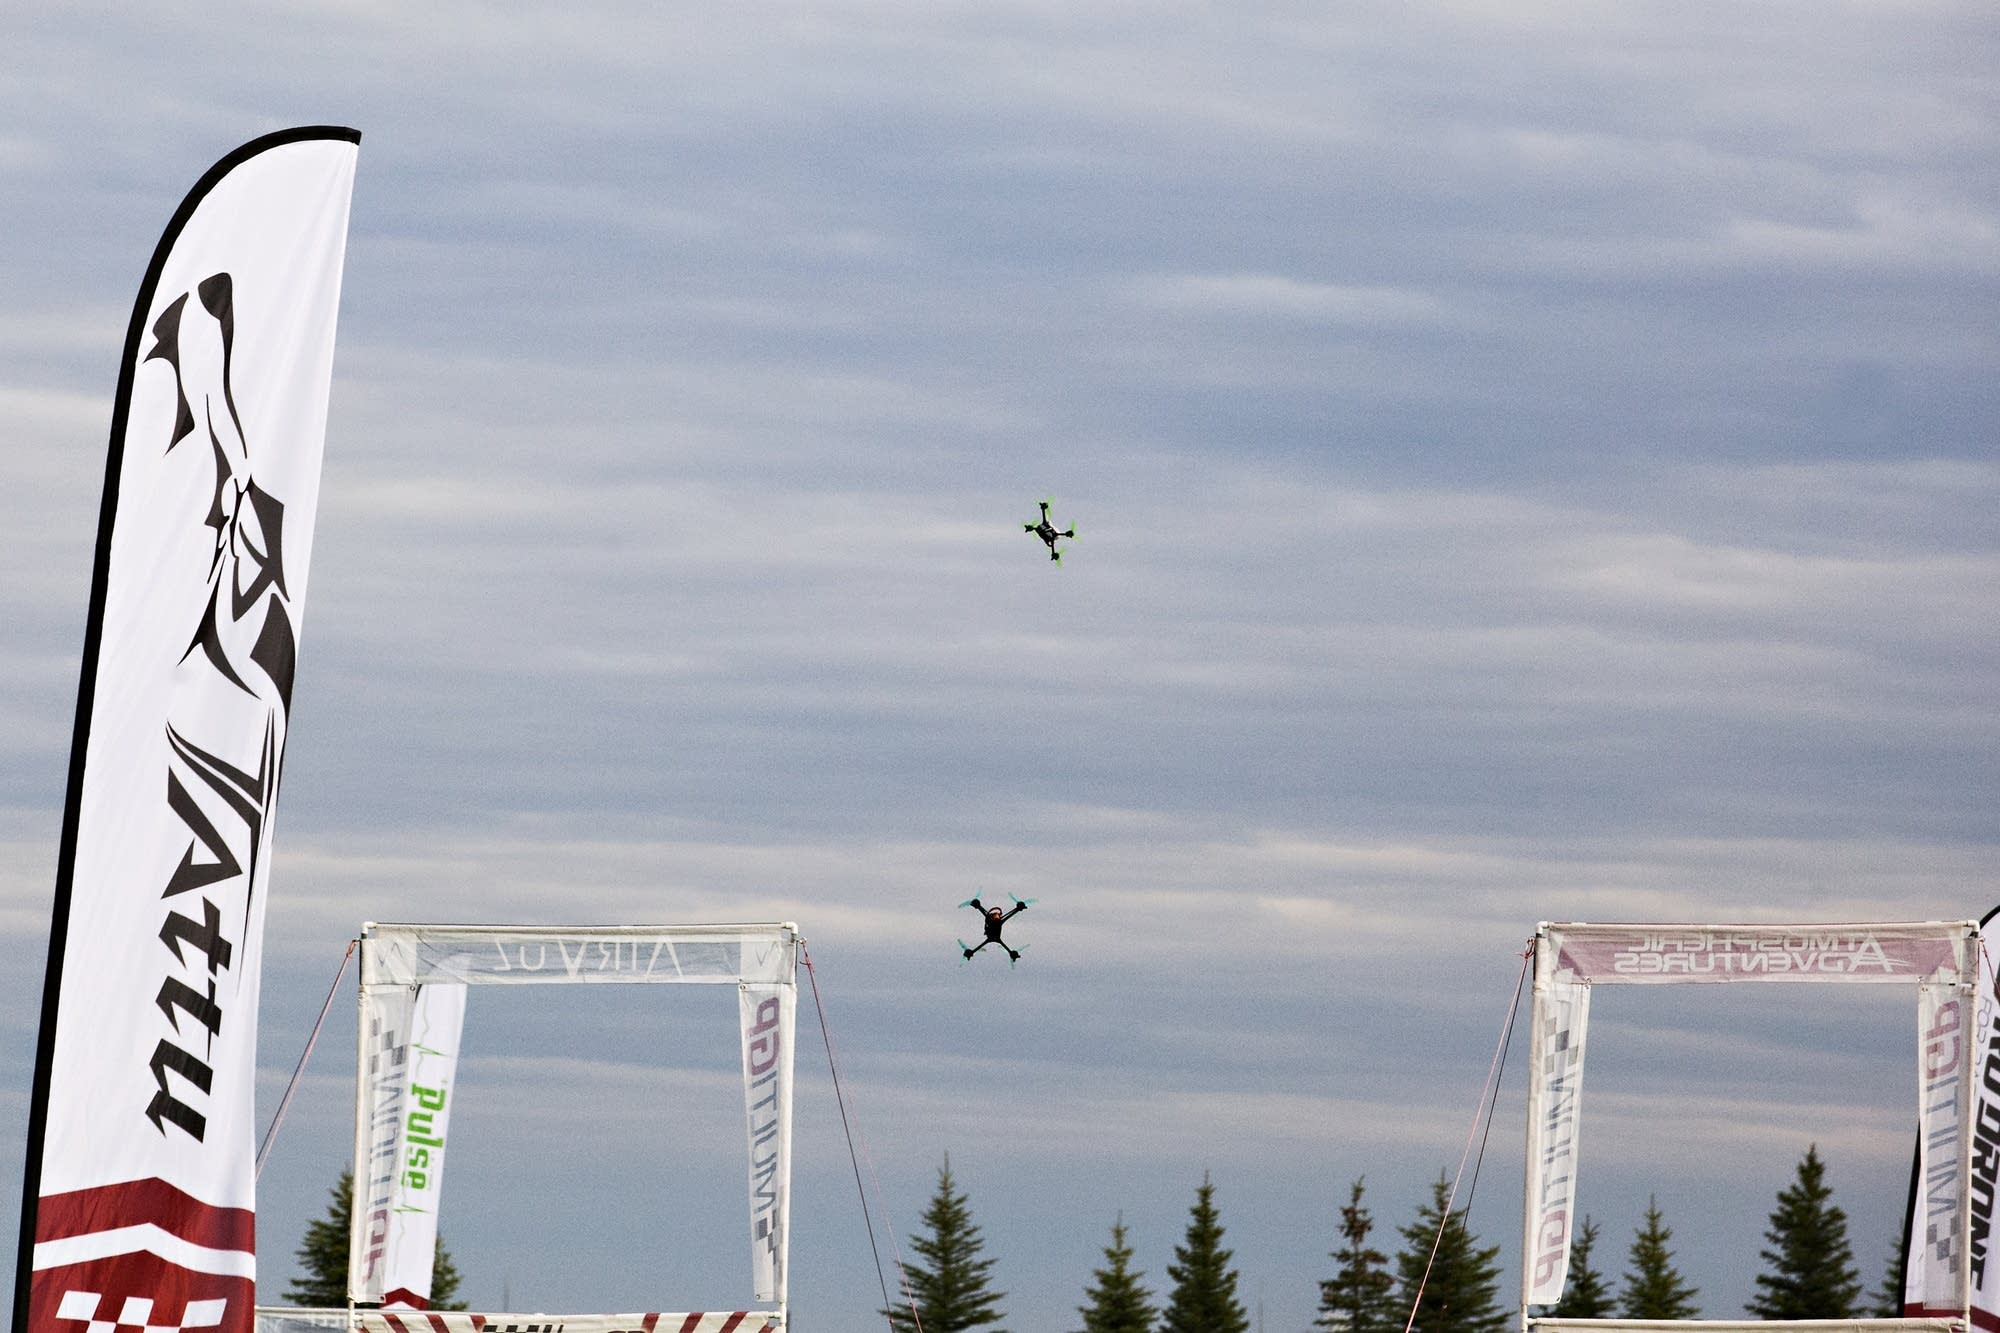 A pair of drones dot the sky during a race.